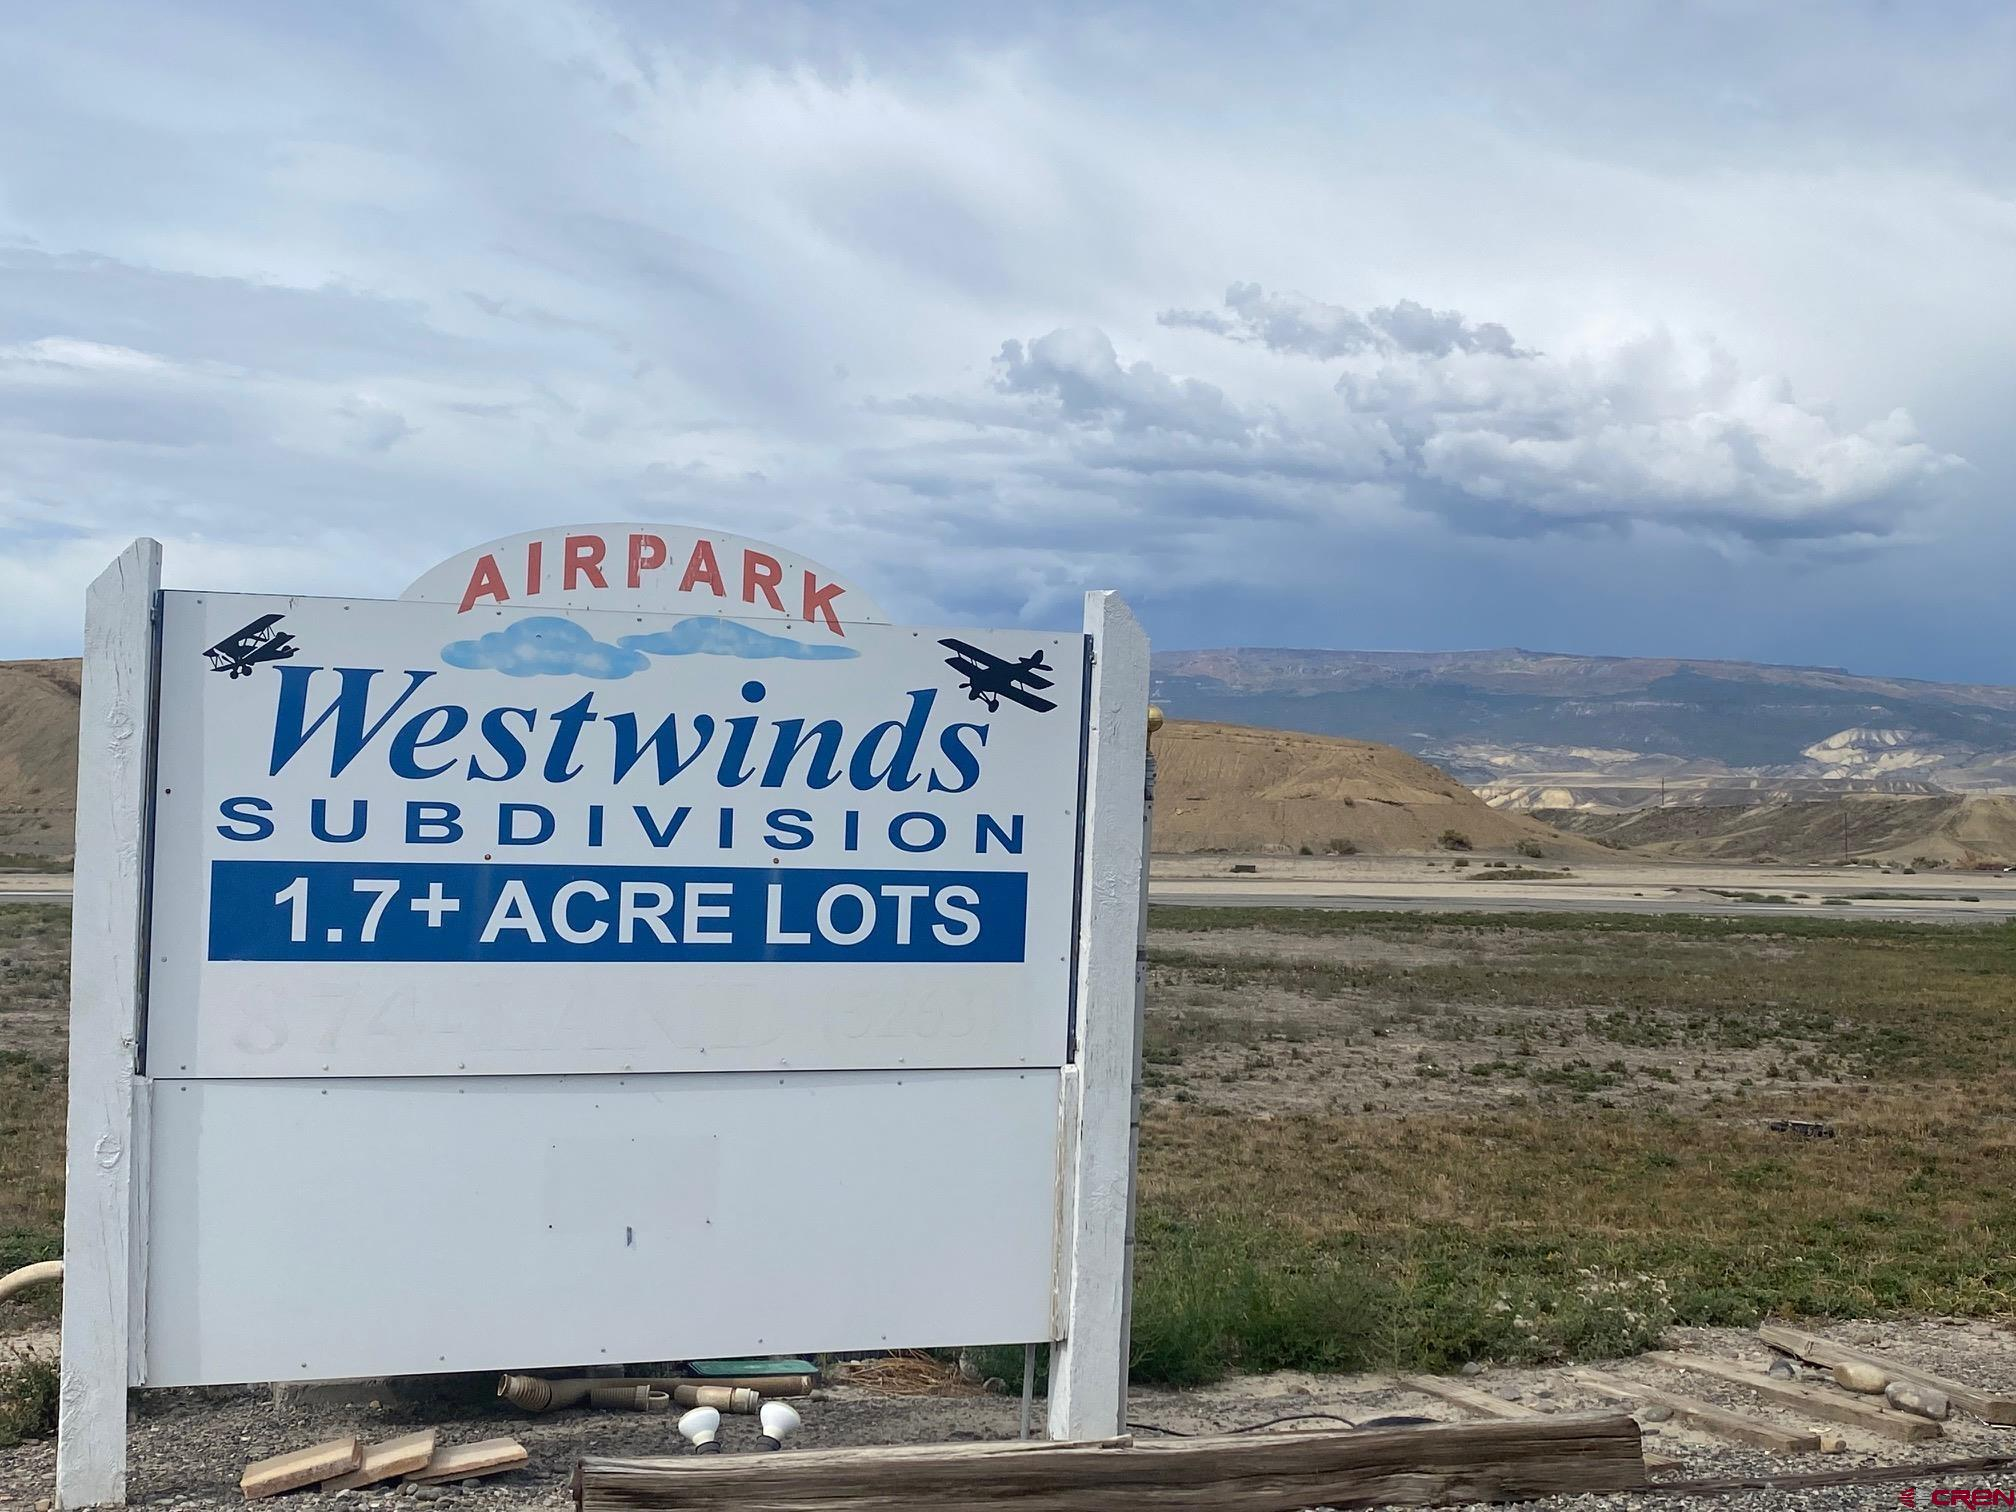 Great opportunity to own a lot on the Westwind's airport right of the main runway.